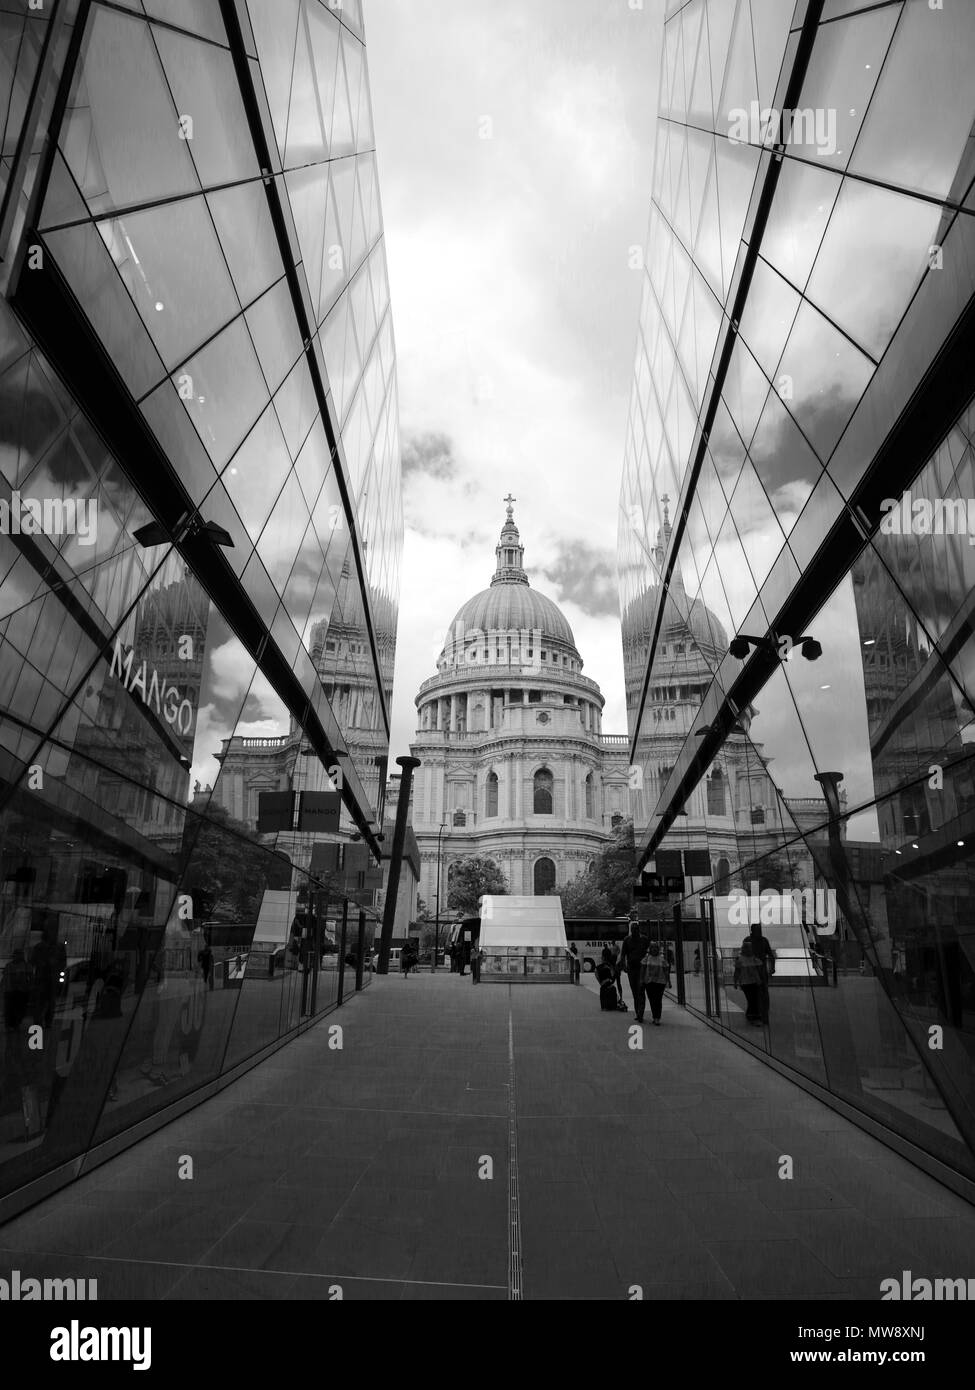 Black and white view of St Paul's Cathedral, viewed from between two glass buildings, showing the reflection of St Paul's in the glass buildings. Stock Photo